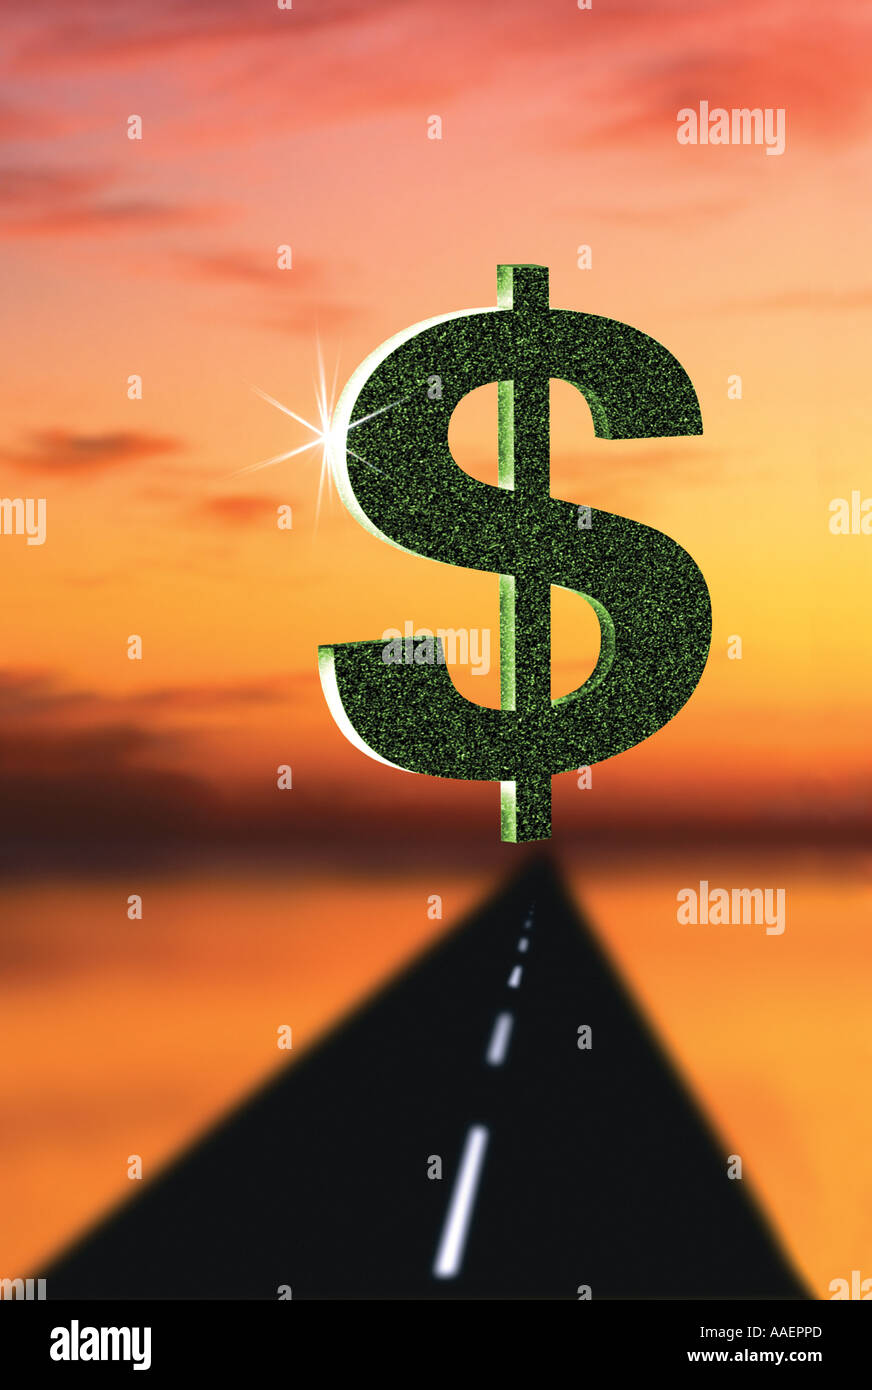 Dollar sign Road to riches and wealth - Stock Image